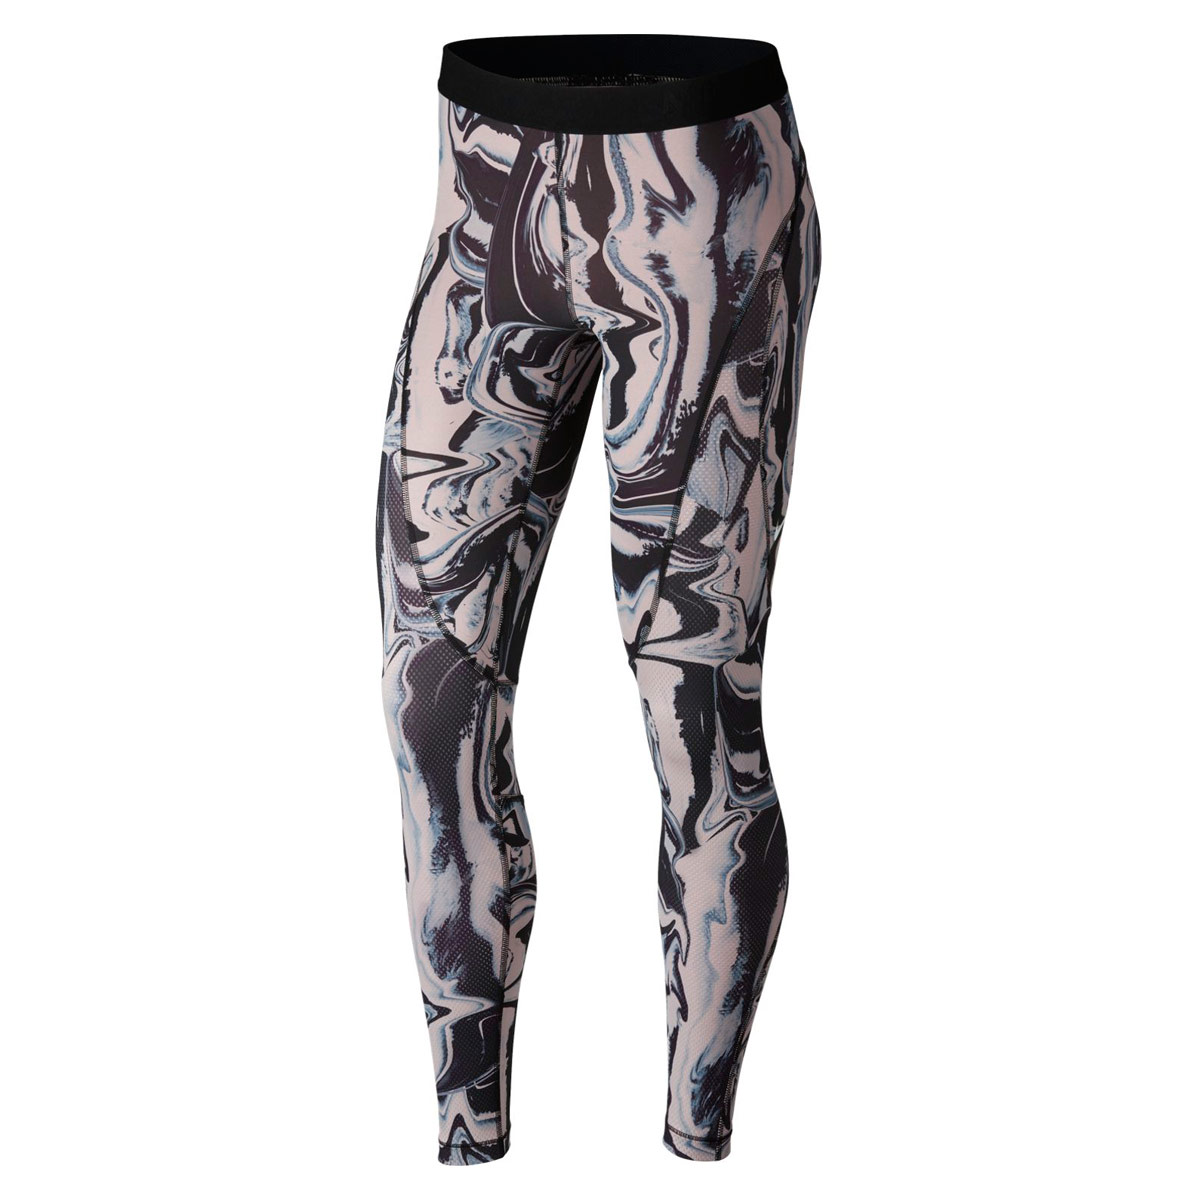 Fitness Pour Gris Hypercool Nike Pro Pantalons Femme Tights bfvmIg6Y7y